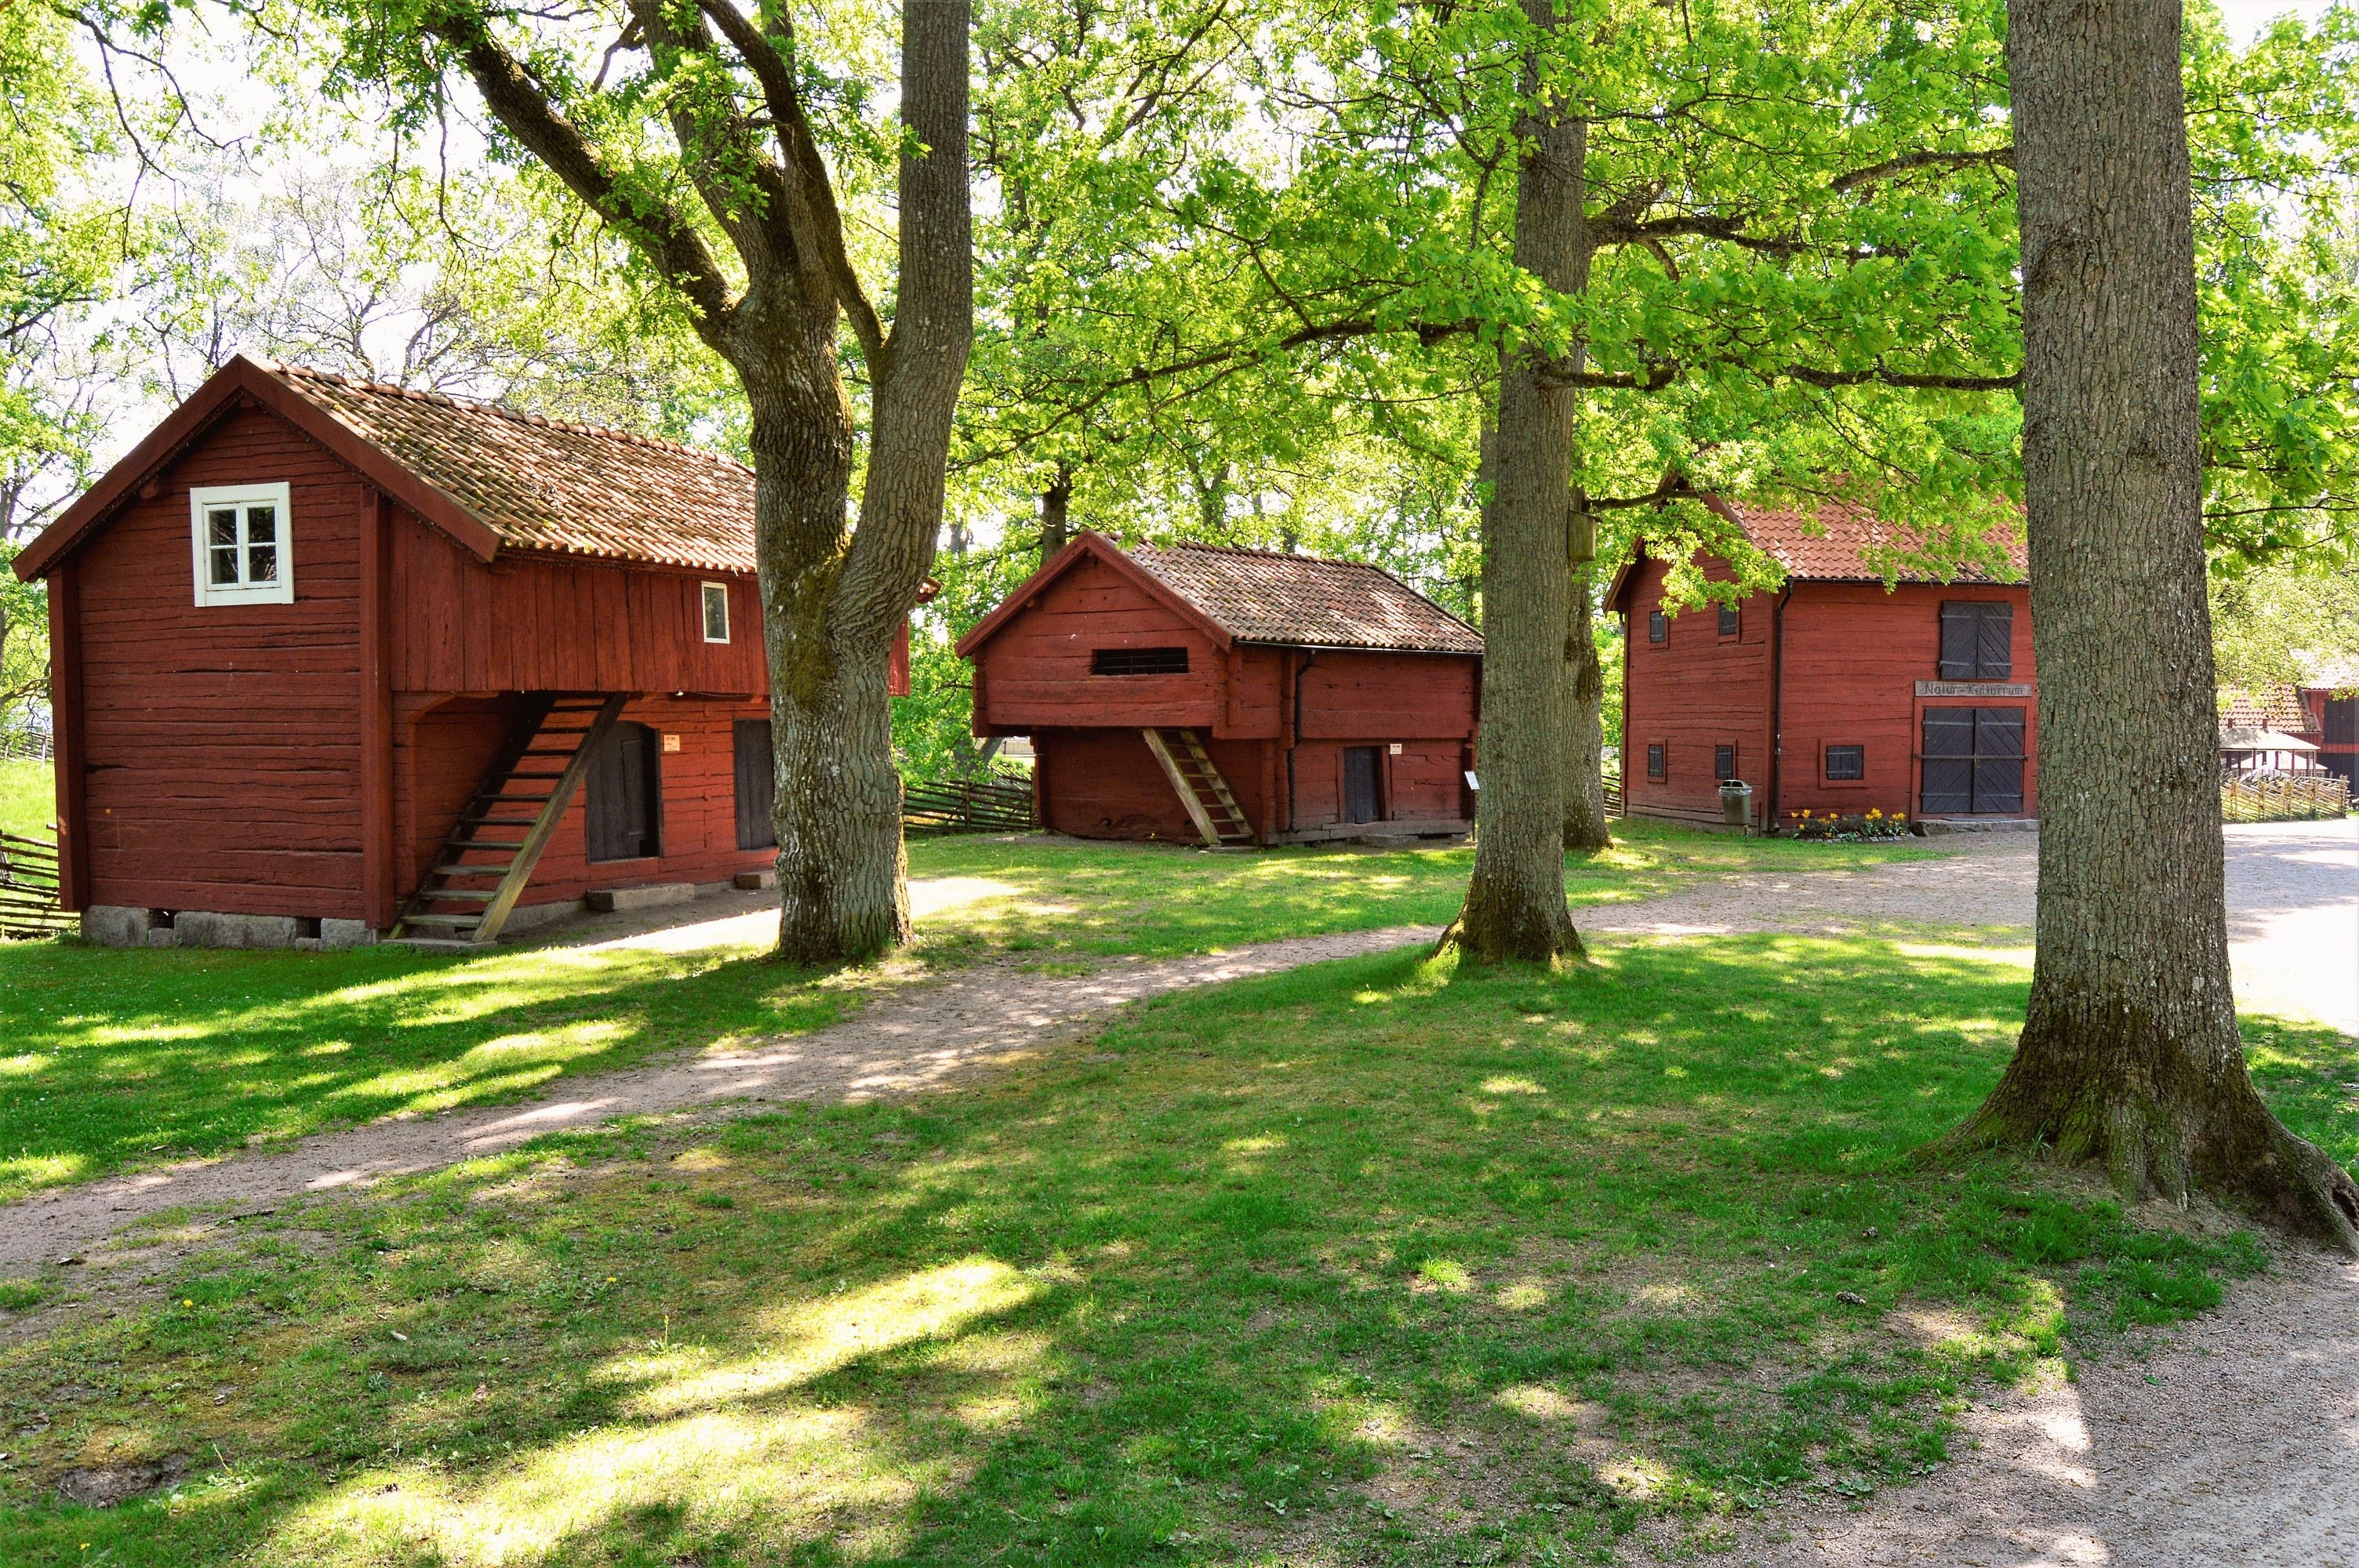 Three Brown Wooden Cabins